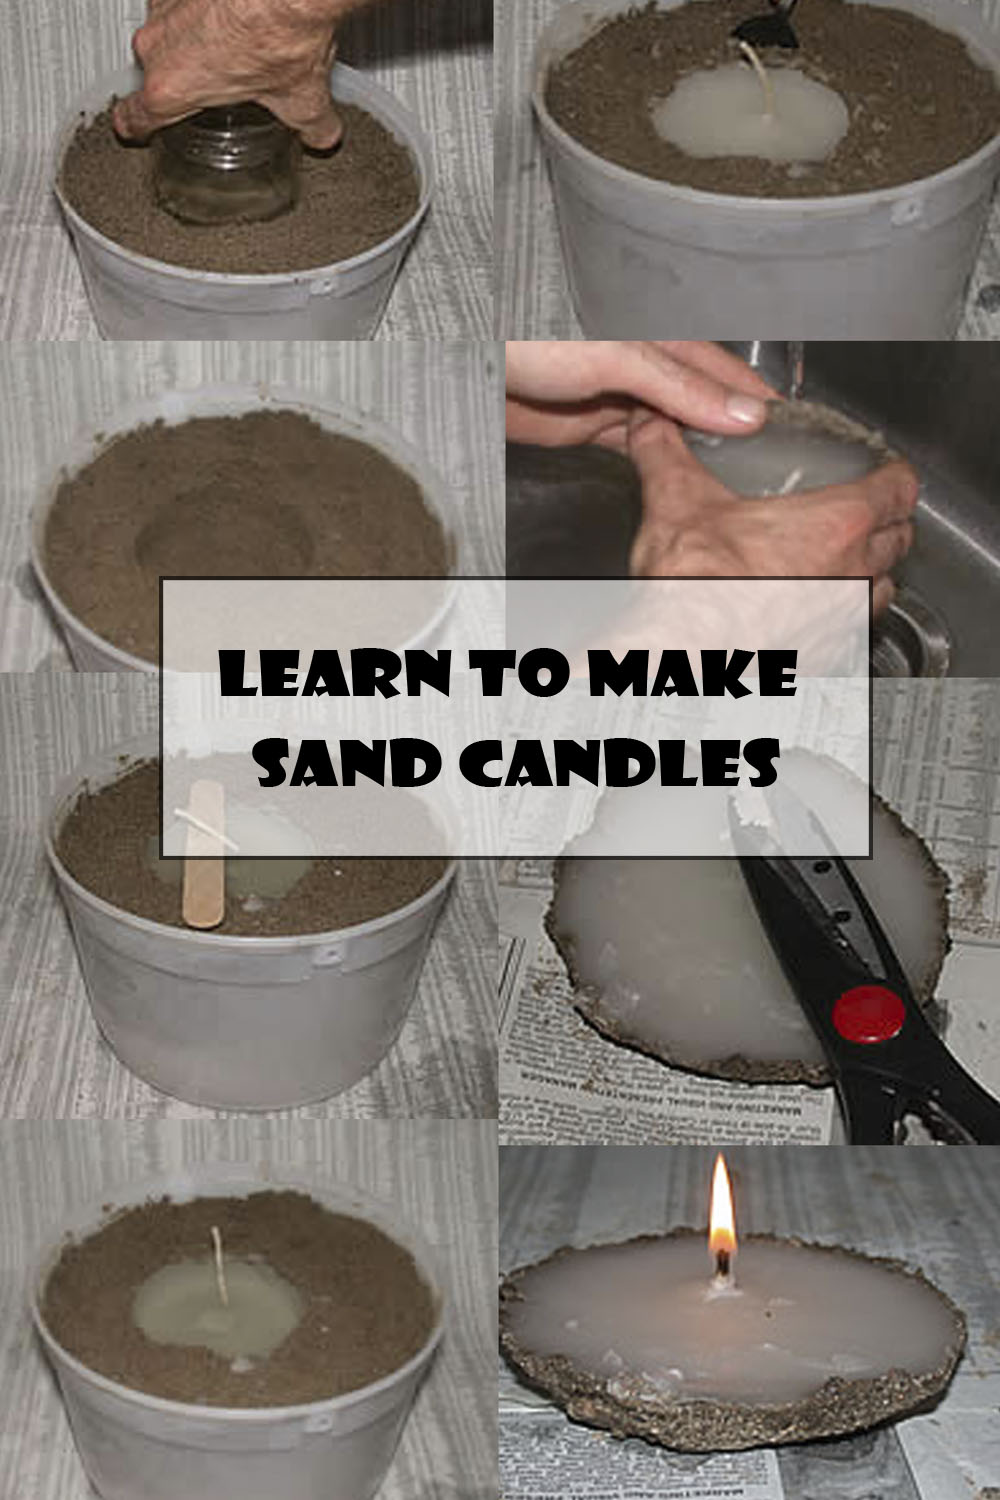 Learn to Make Sand Candles